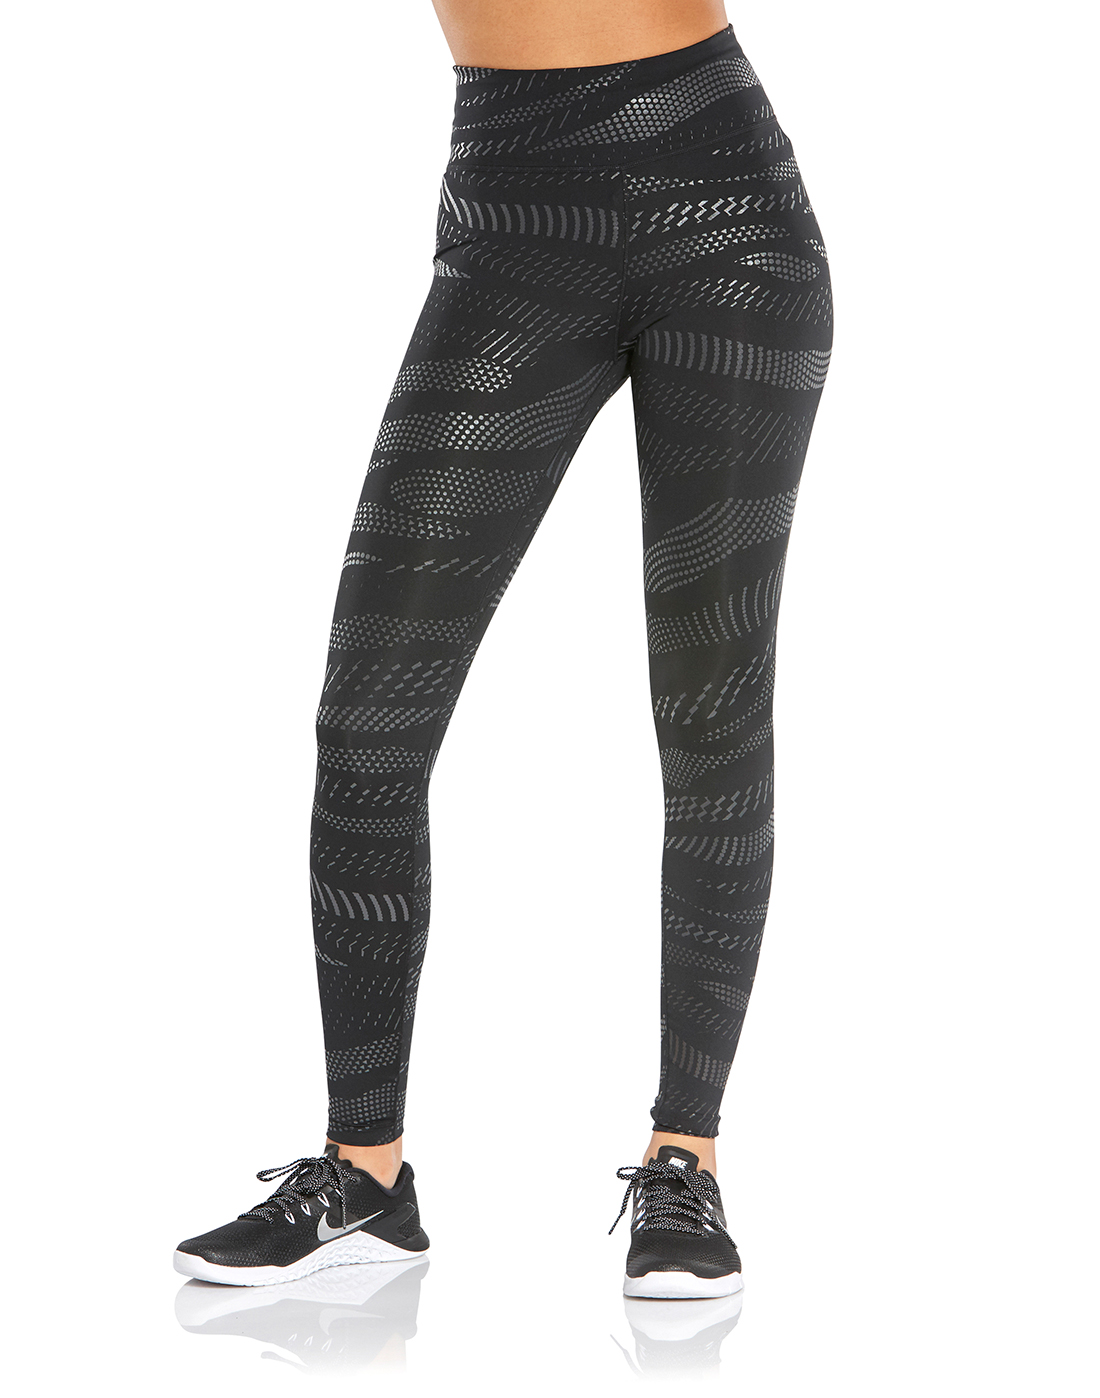 9fea09b695 Women's Black Nike One Print Gym Tights | Life Style Sports